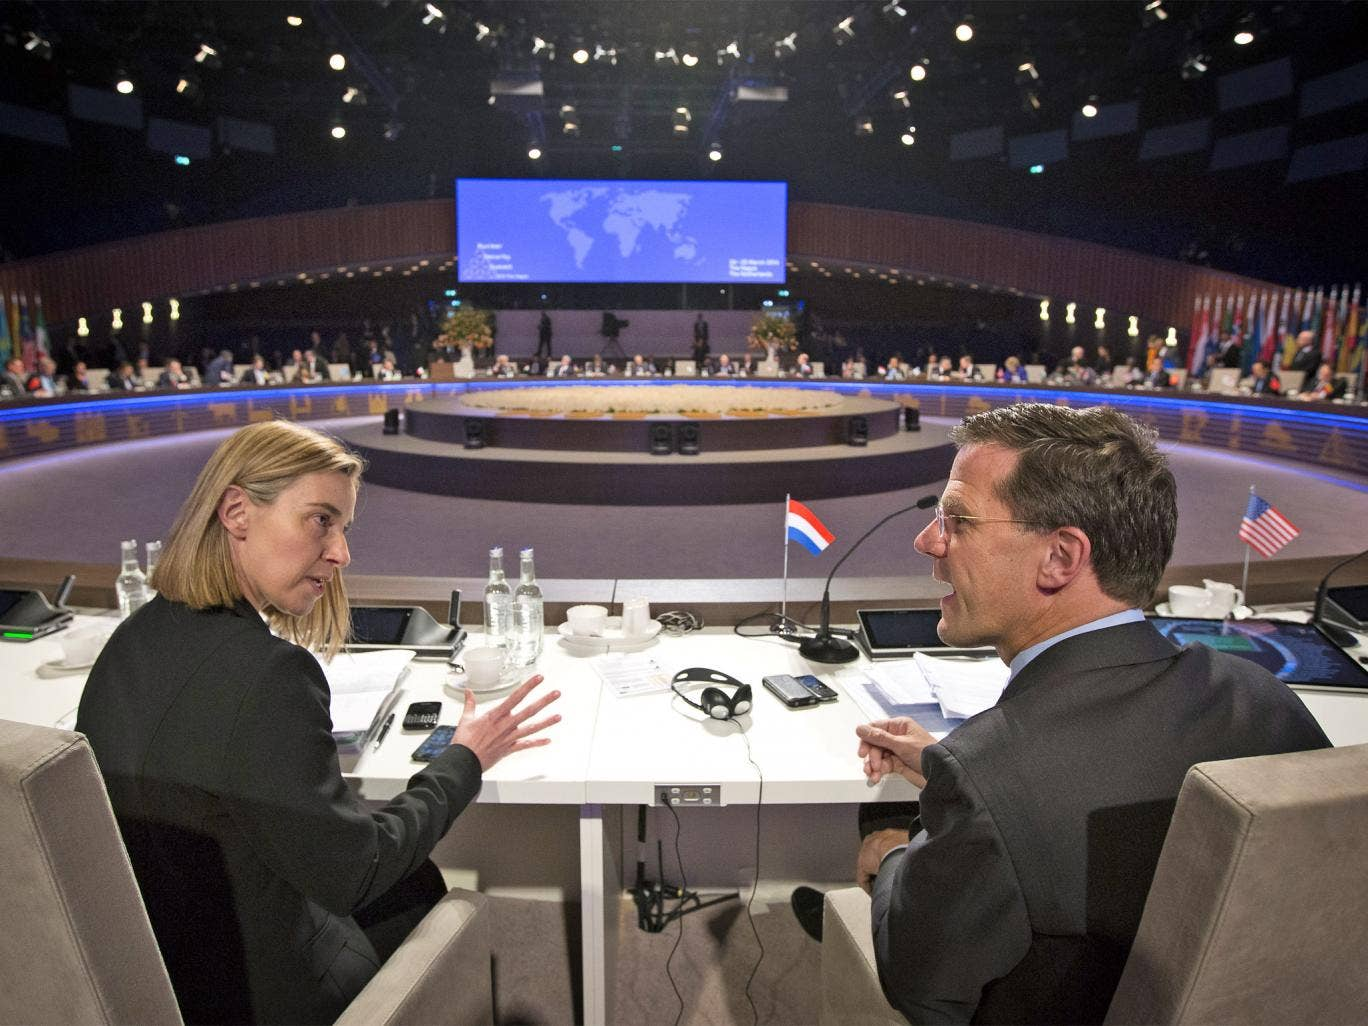 Federica Mogherini, Italian minister of Foreign Affairs talks with Mark Rutte, Prime Minister of the Netherlands at the 2014 Nuclear Security Summit